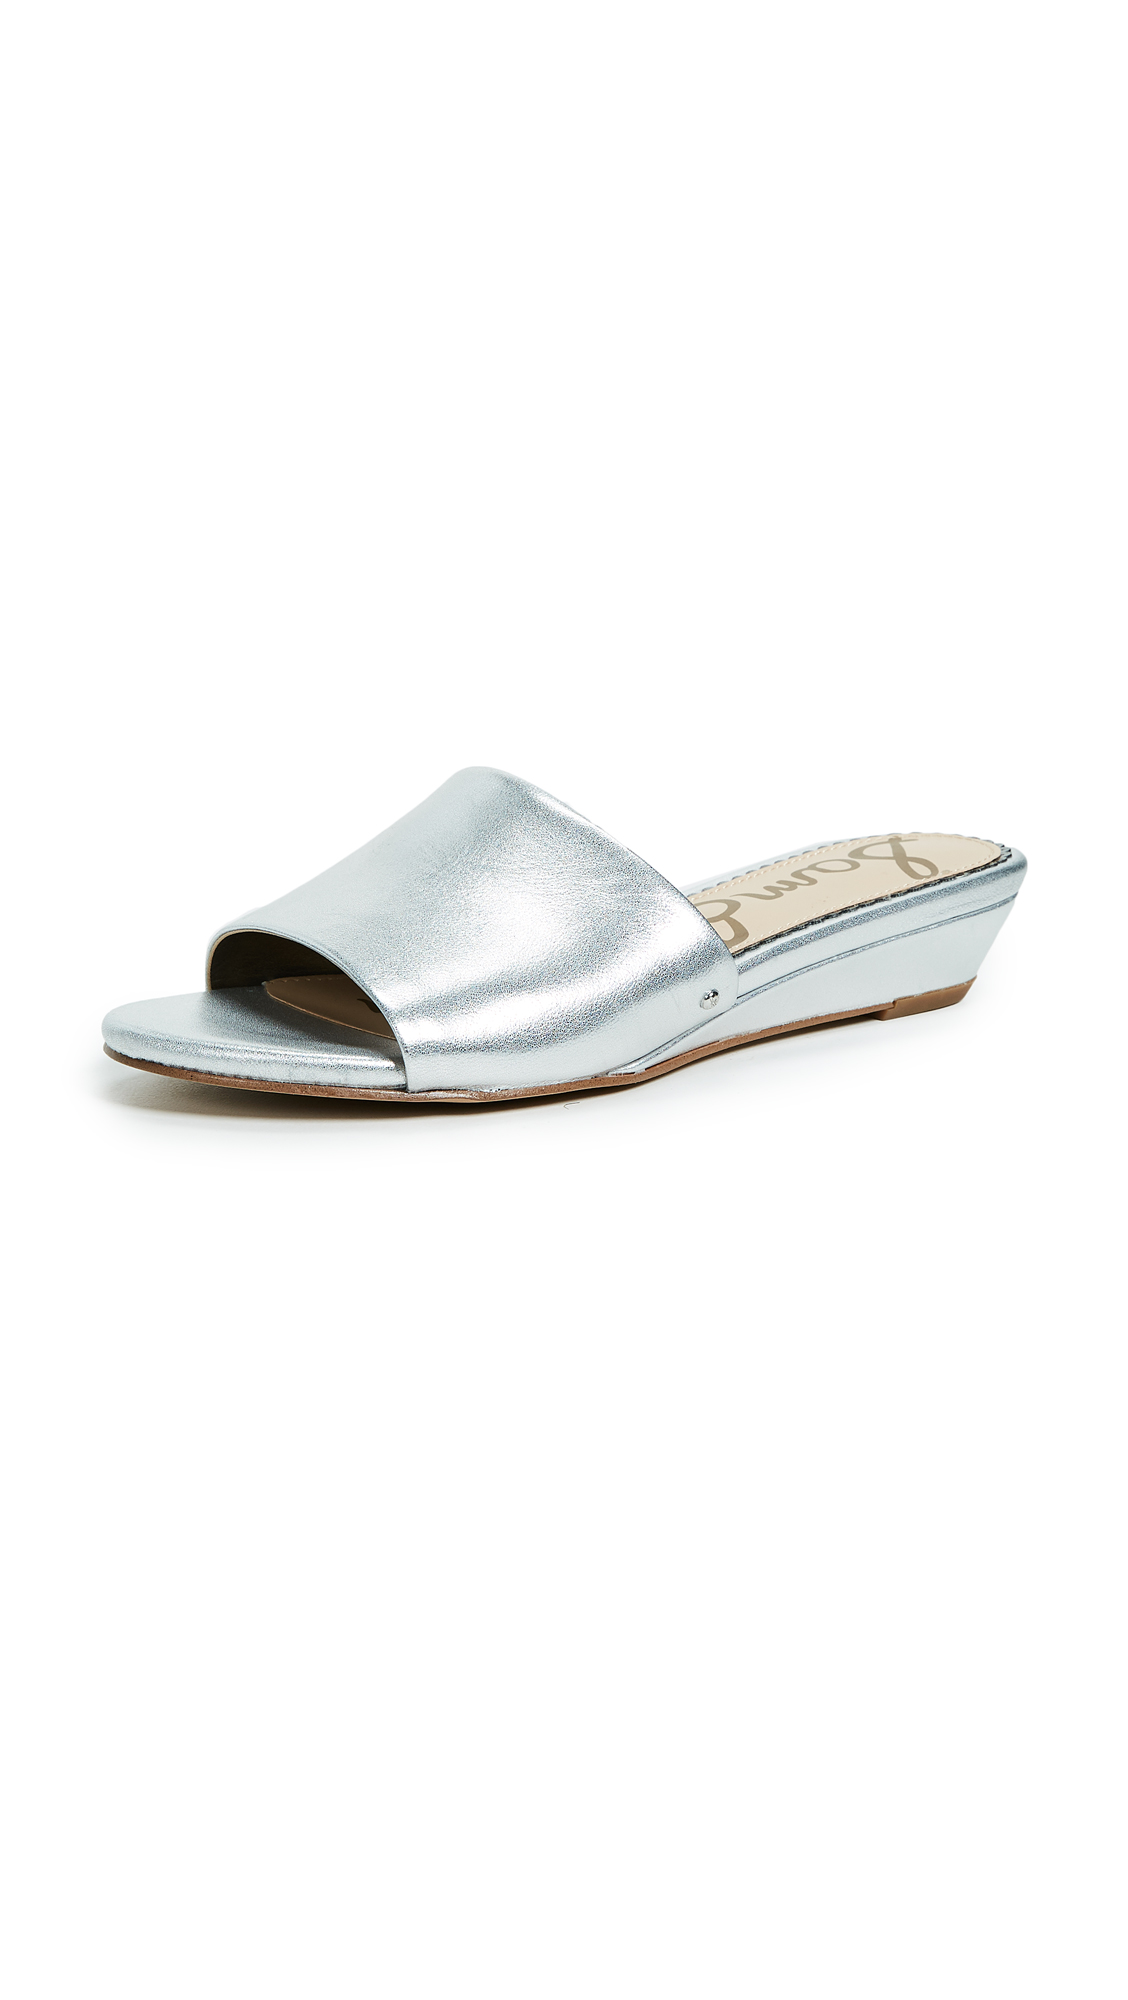 Sam Edelman Liliana Demi Wedge Slides - Silver